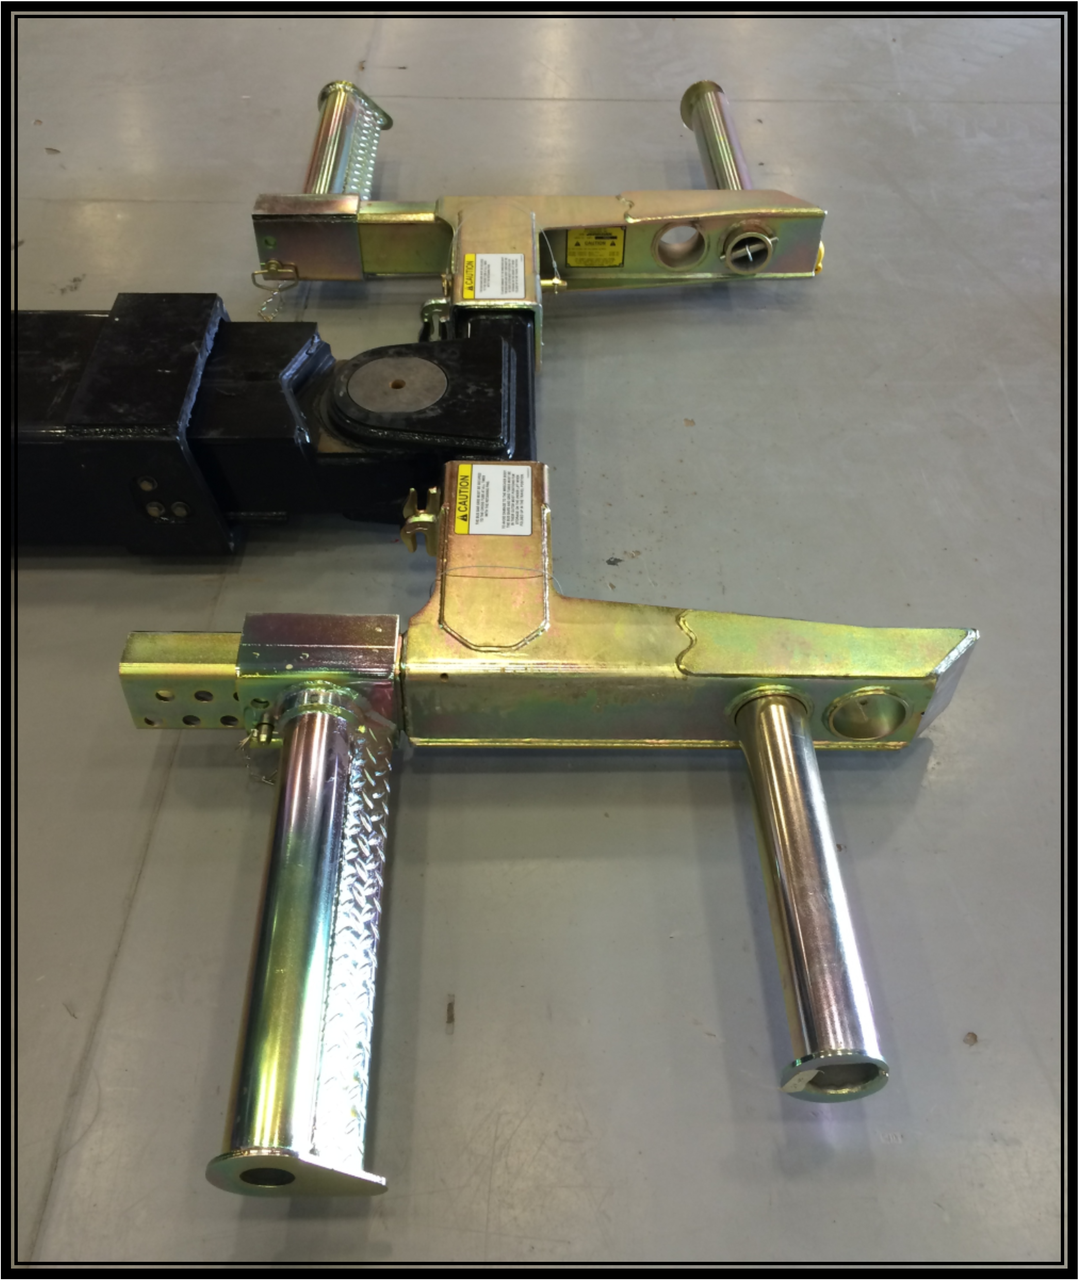 This product is a Jerr Dan Bus Arm, wheel grid, and tire lift installation